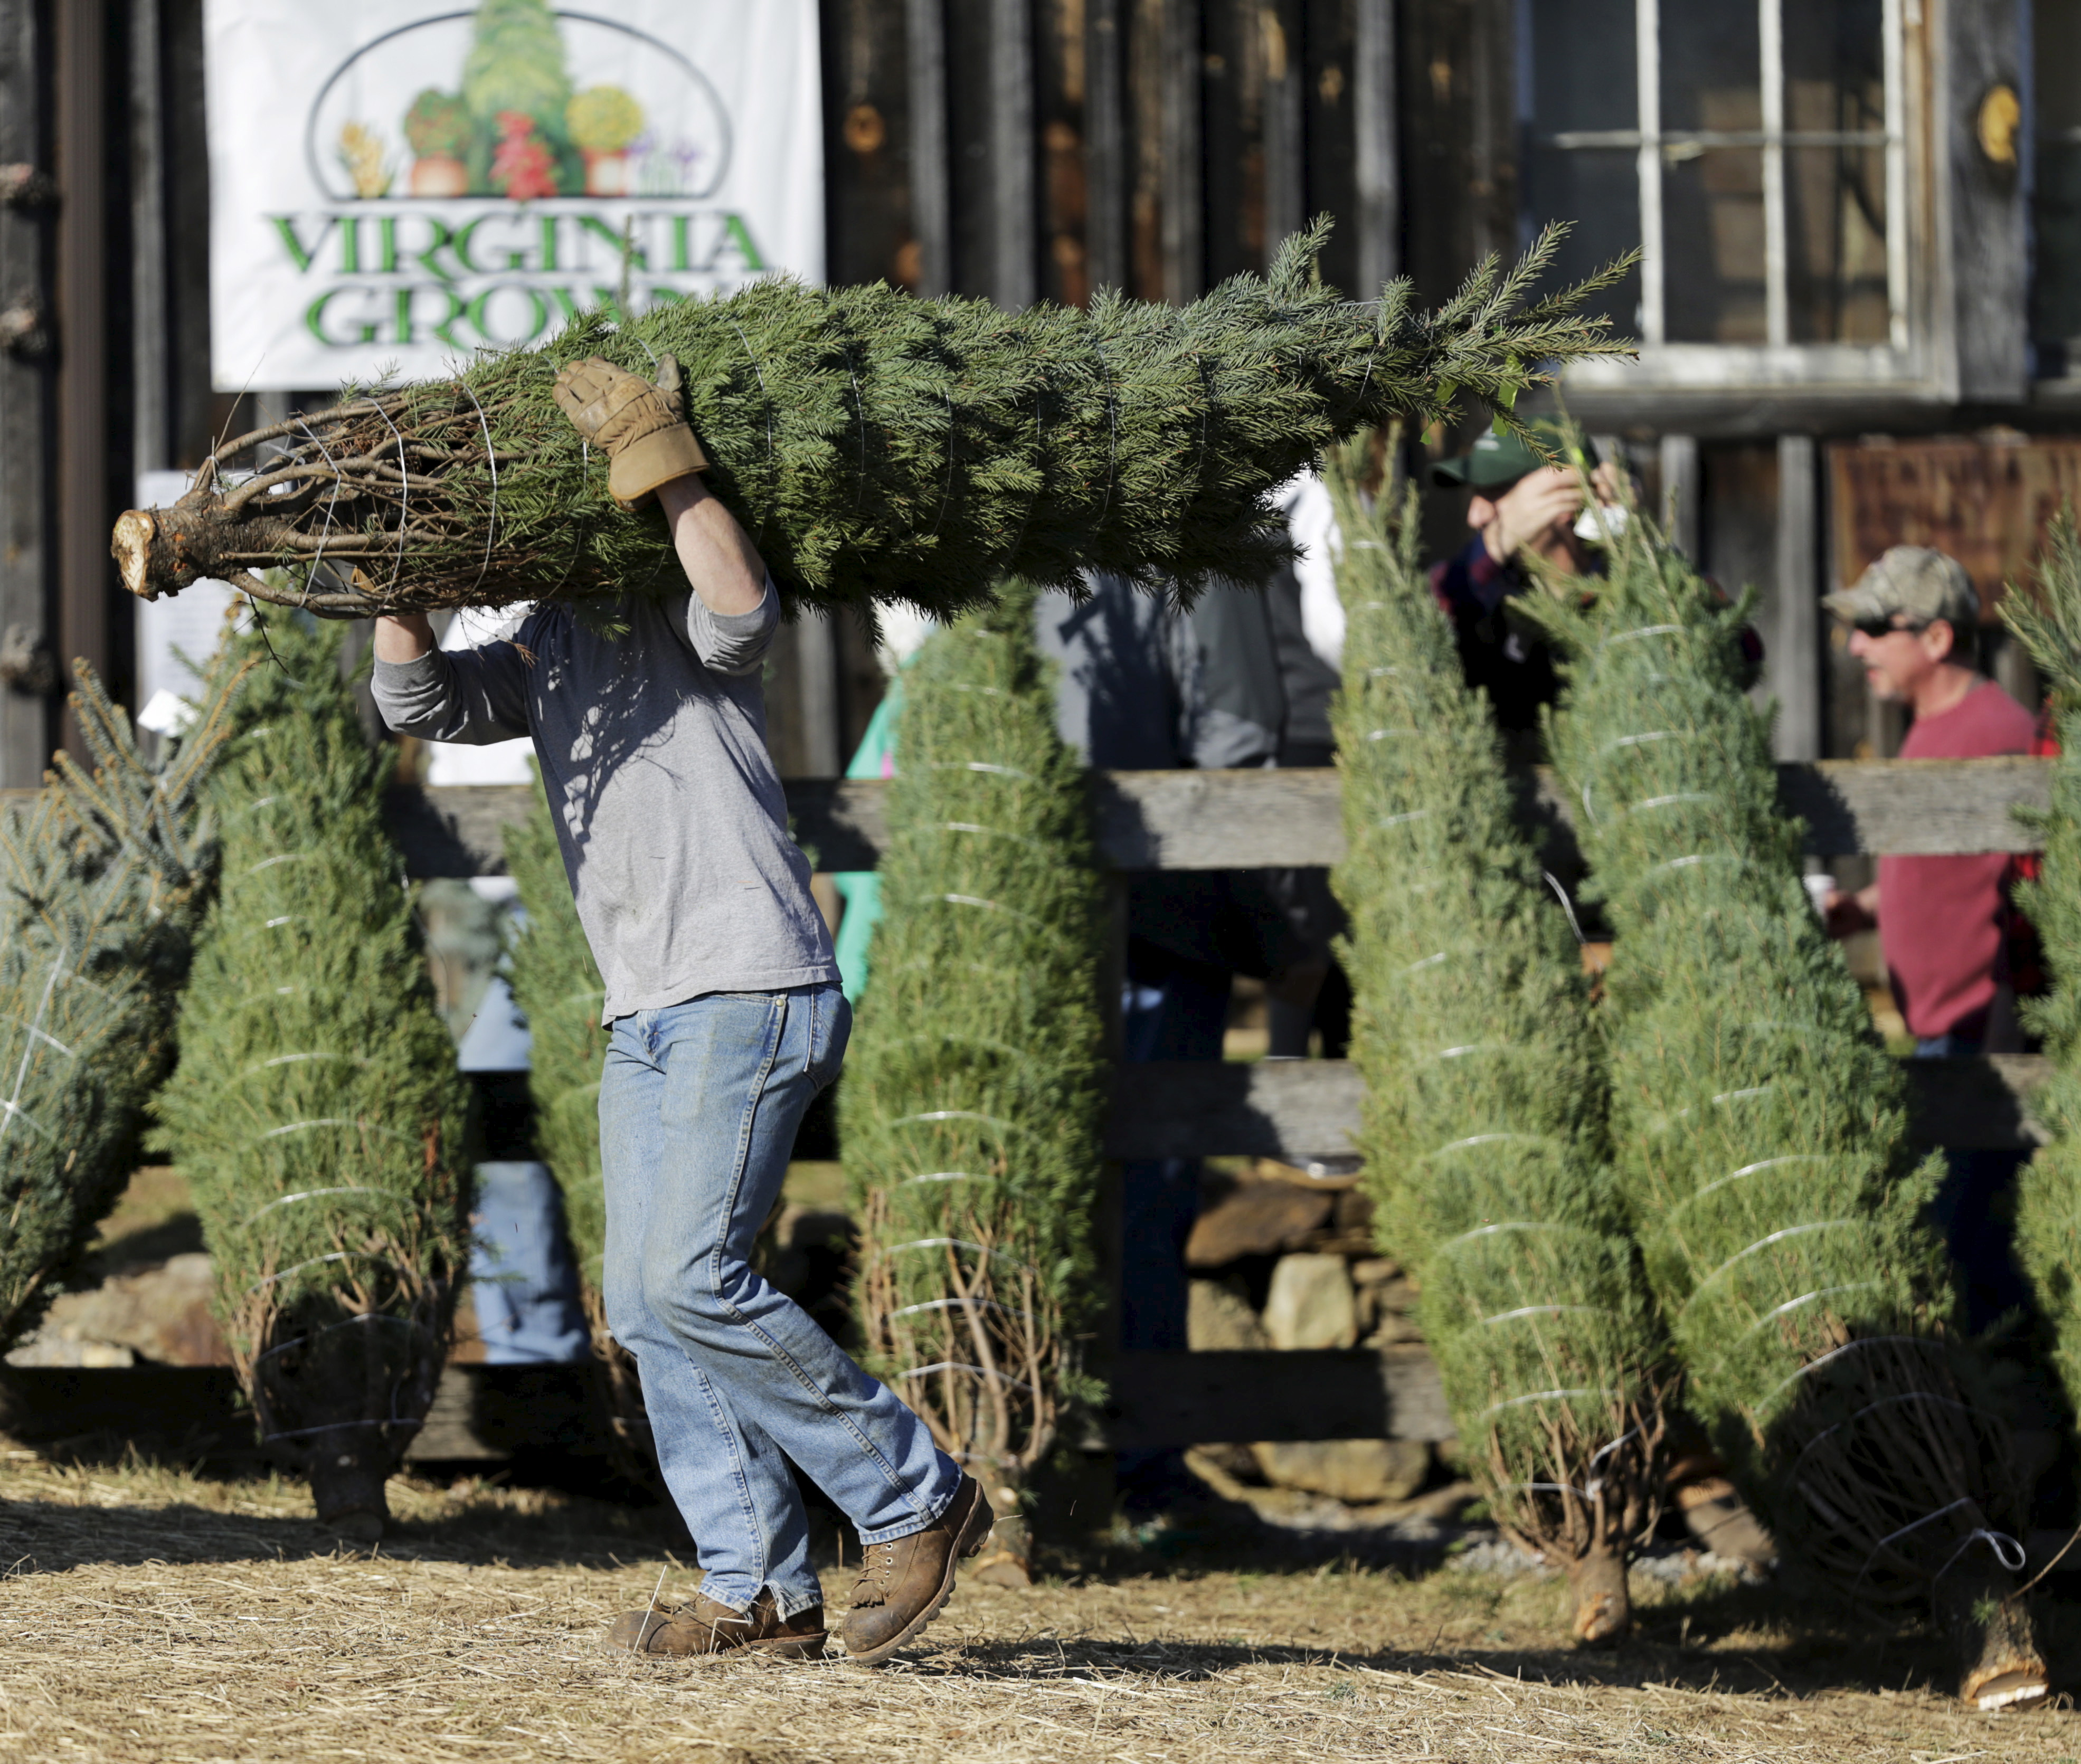 Shortage Of Christmas Trees 2019 Christmas tree shortage: America is facing the reality of fewer